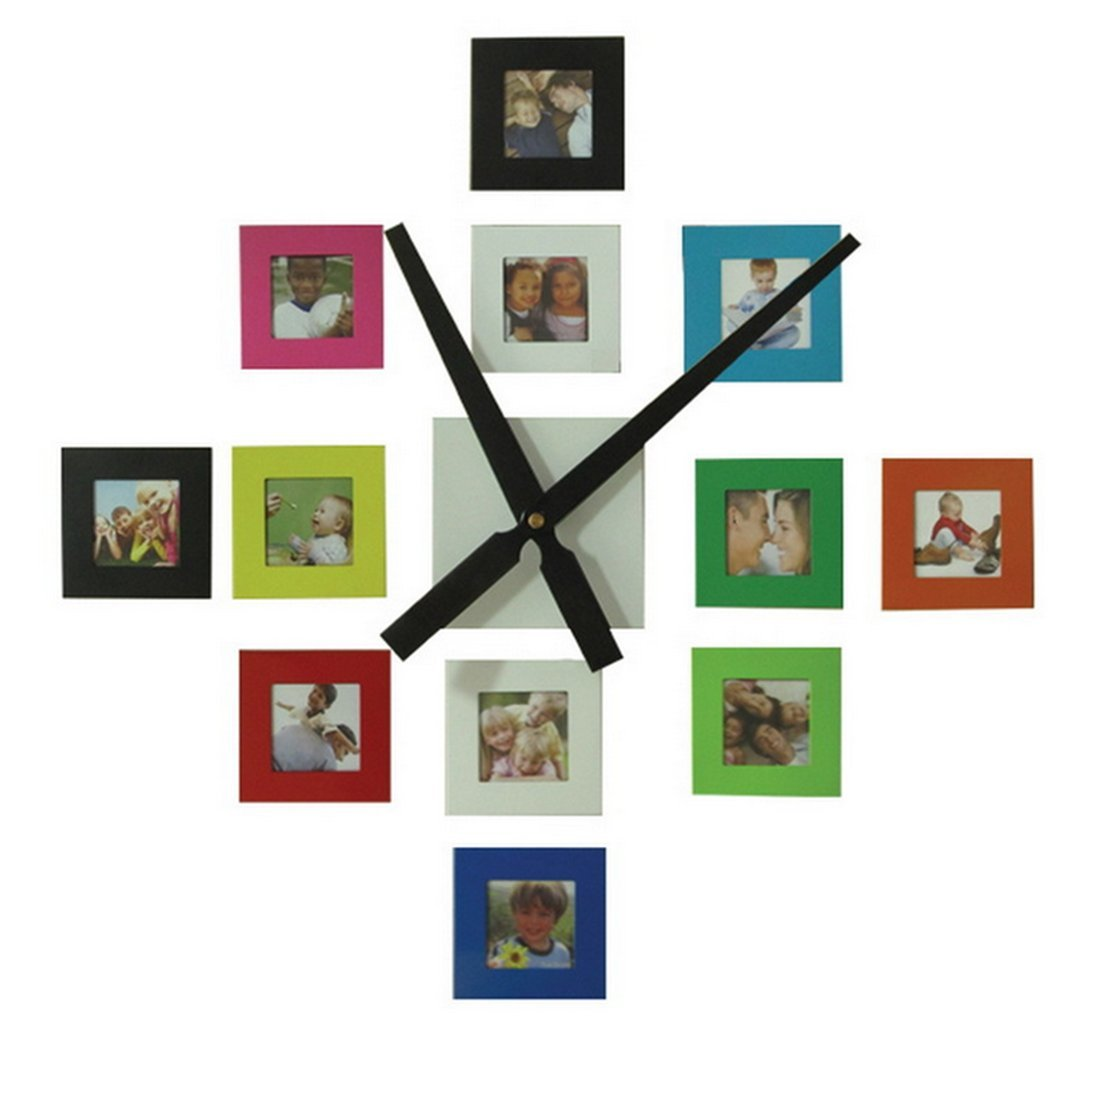 Amazon sentiment photo mute diy large wall clock 3d sticker amazon sentiment photo mute diy large wall clock 3d sticker home office decor giftdecal and picture frames kit time spent with family is worth every amipublicfo Gallery